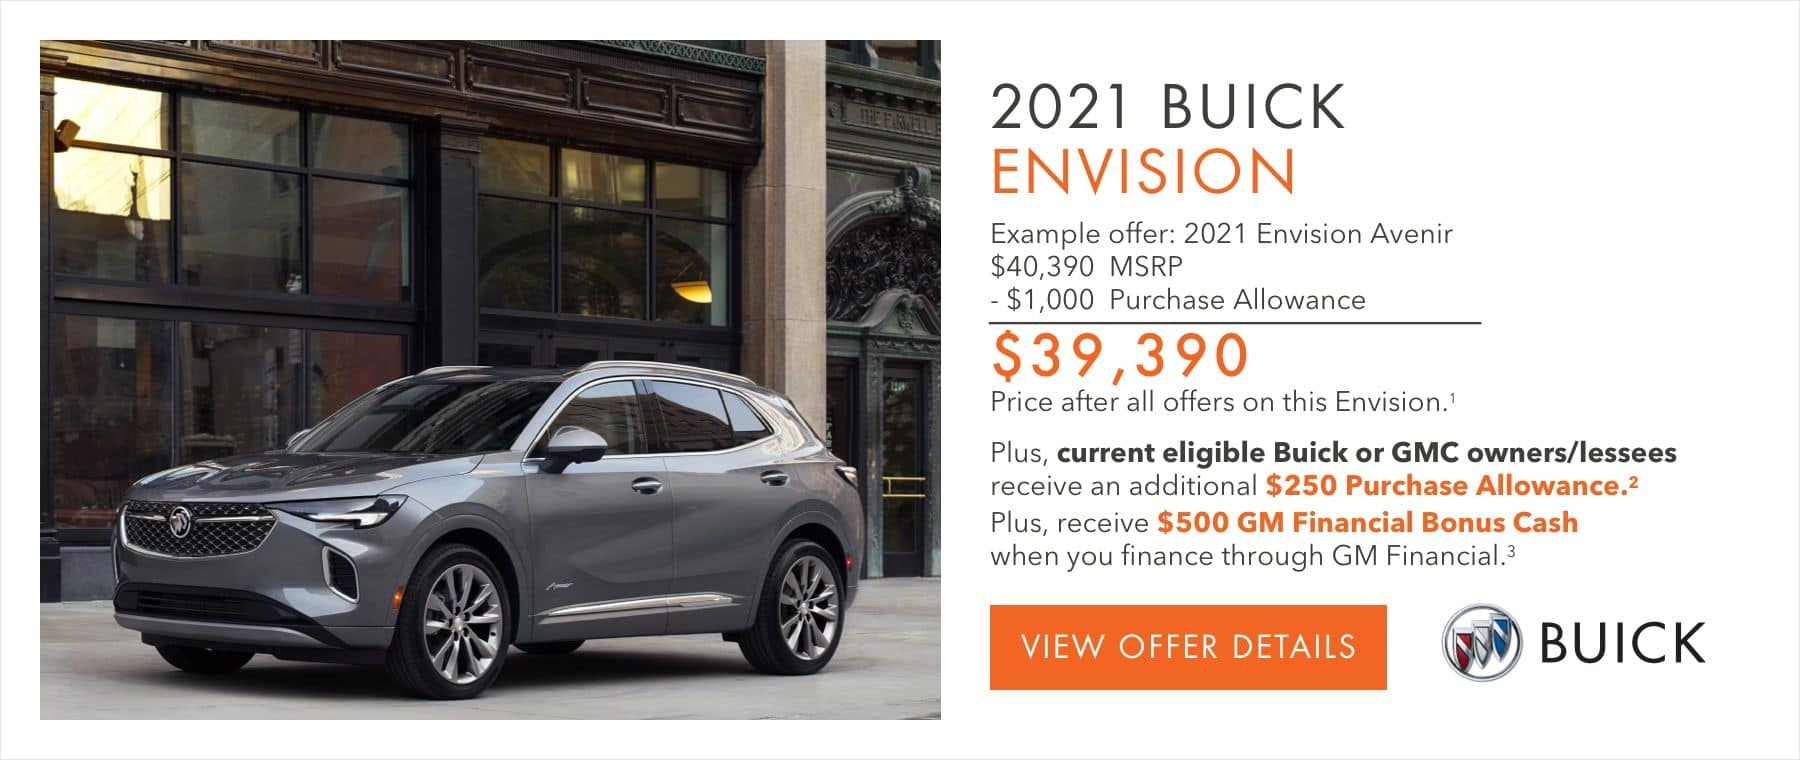 EXAMPLE OFFER: 2021 ENVISION AVENIR $40,390 MSRP -$1,000 Purchase Allowance $39,390 Price after all offers on this Envision.1 Plus, current eligible Buick or GMC owners/lessees receive an additional $250 Purchase Allowance.2 Plus, receive $500 GM Financial Bonus Cash when you finance through GM Financial.3